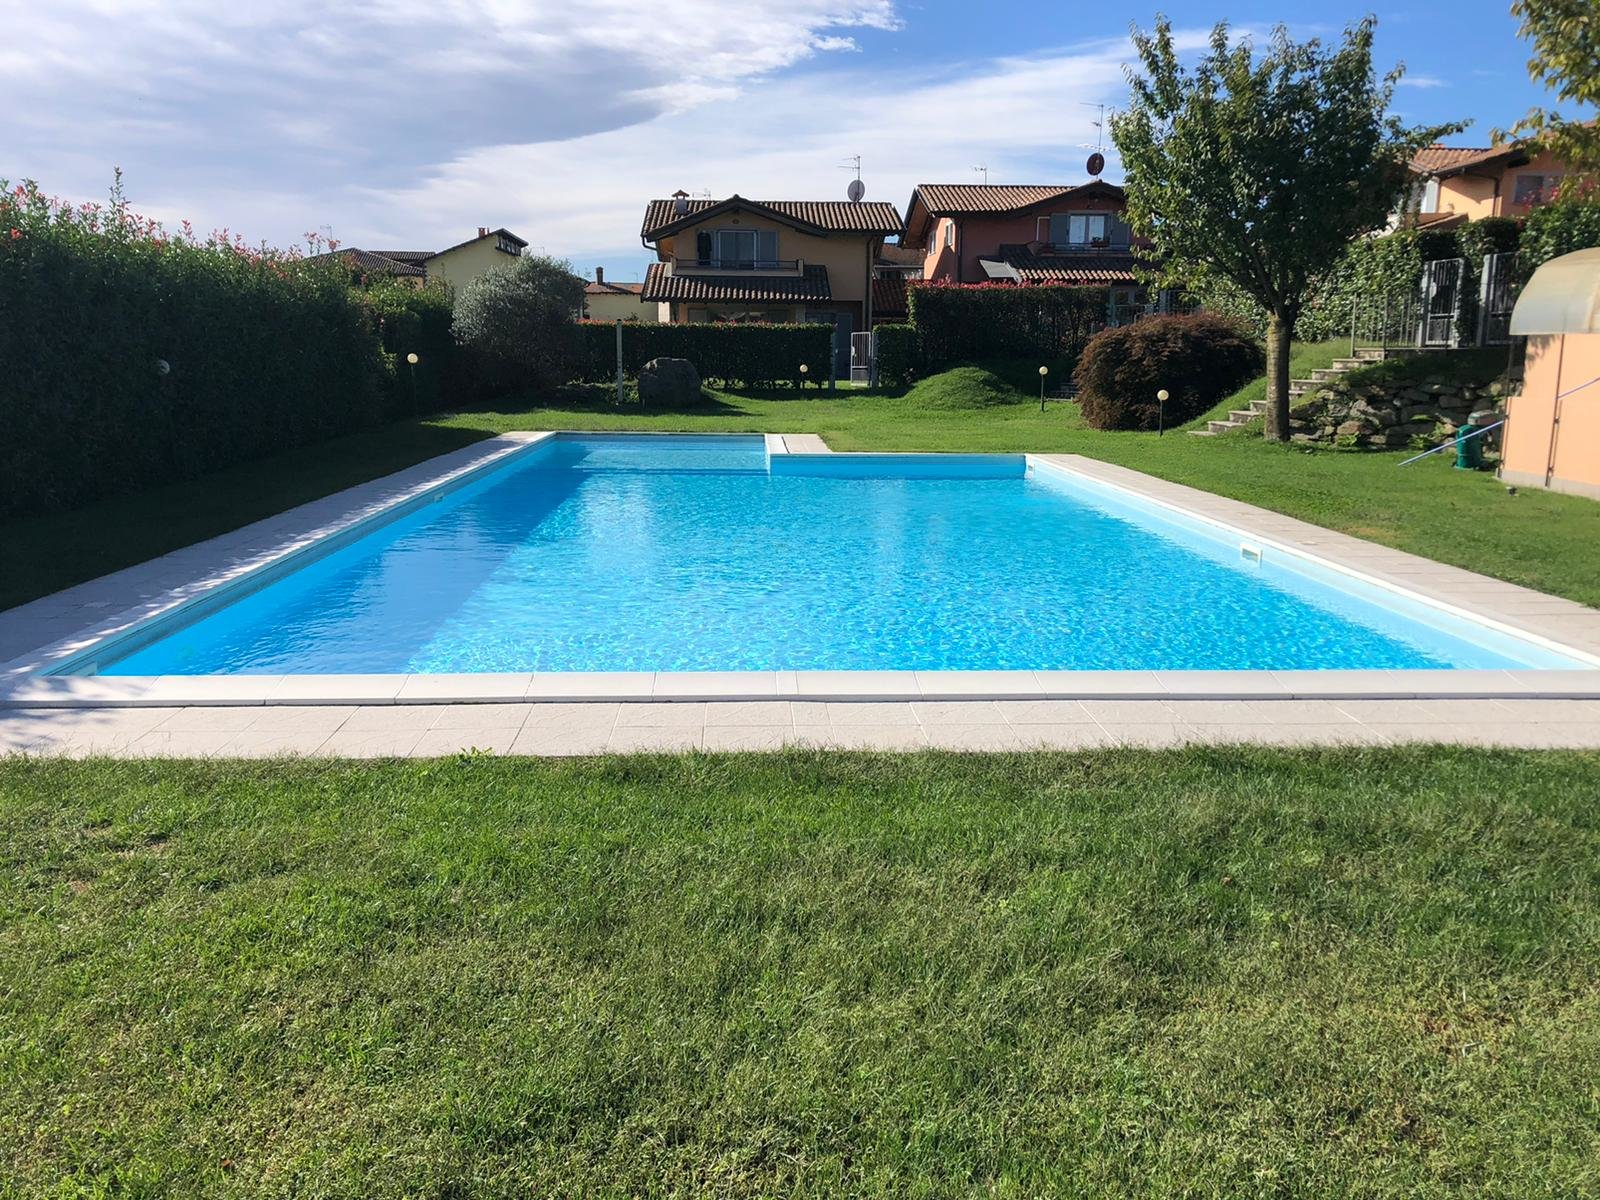 Villa for sale in Residence with swimming pool in Paruzzaro